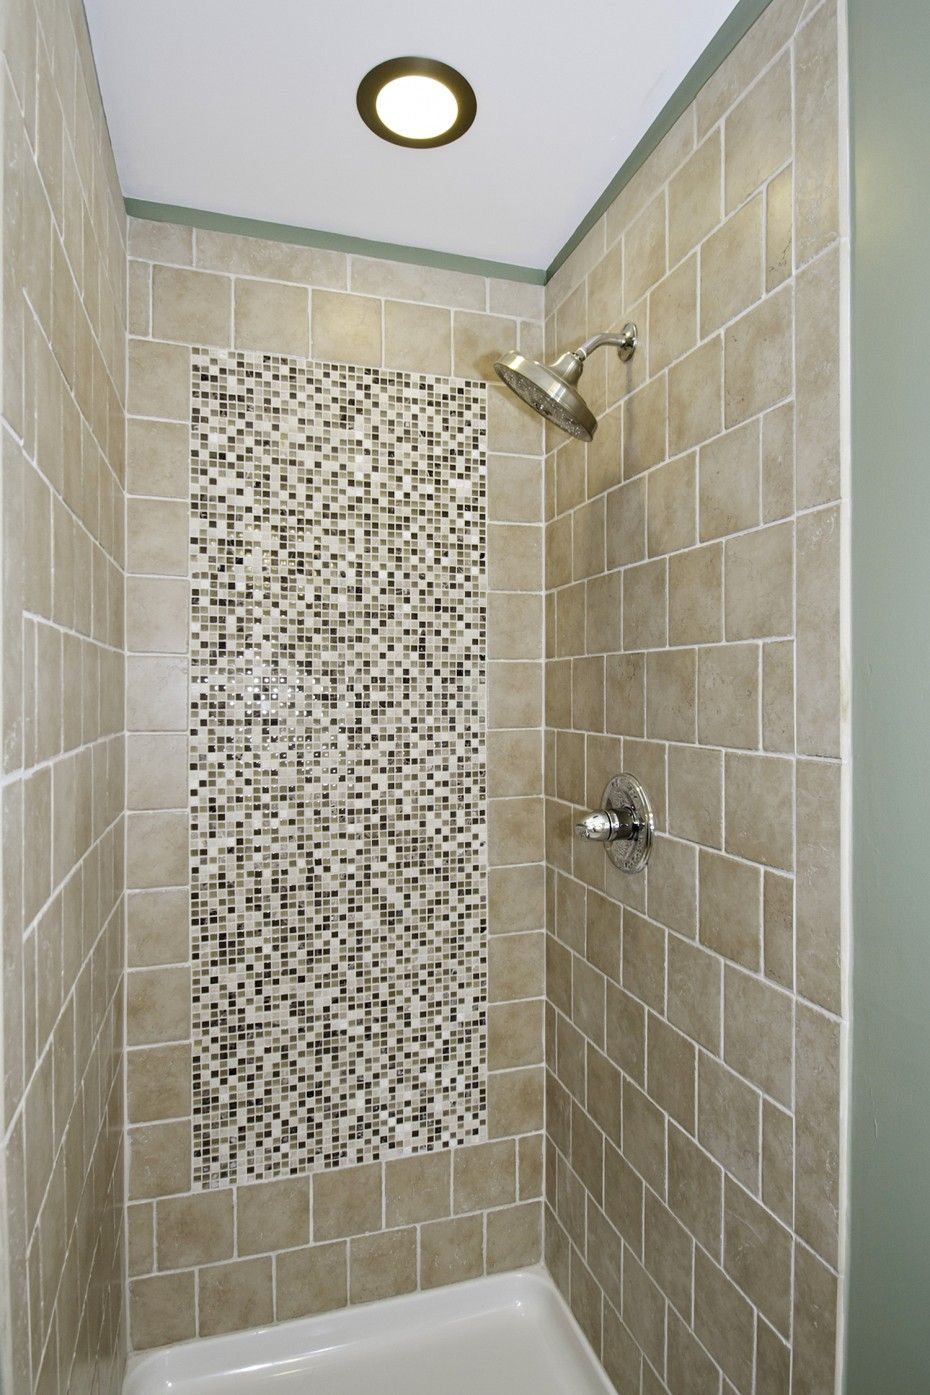 Small bathroom design ideas special ideas creative mosaic bathroom - Bathroom Inspiration Superb Stand Up Shower With Enclosure And Acrylic Designs In Vogue Small